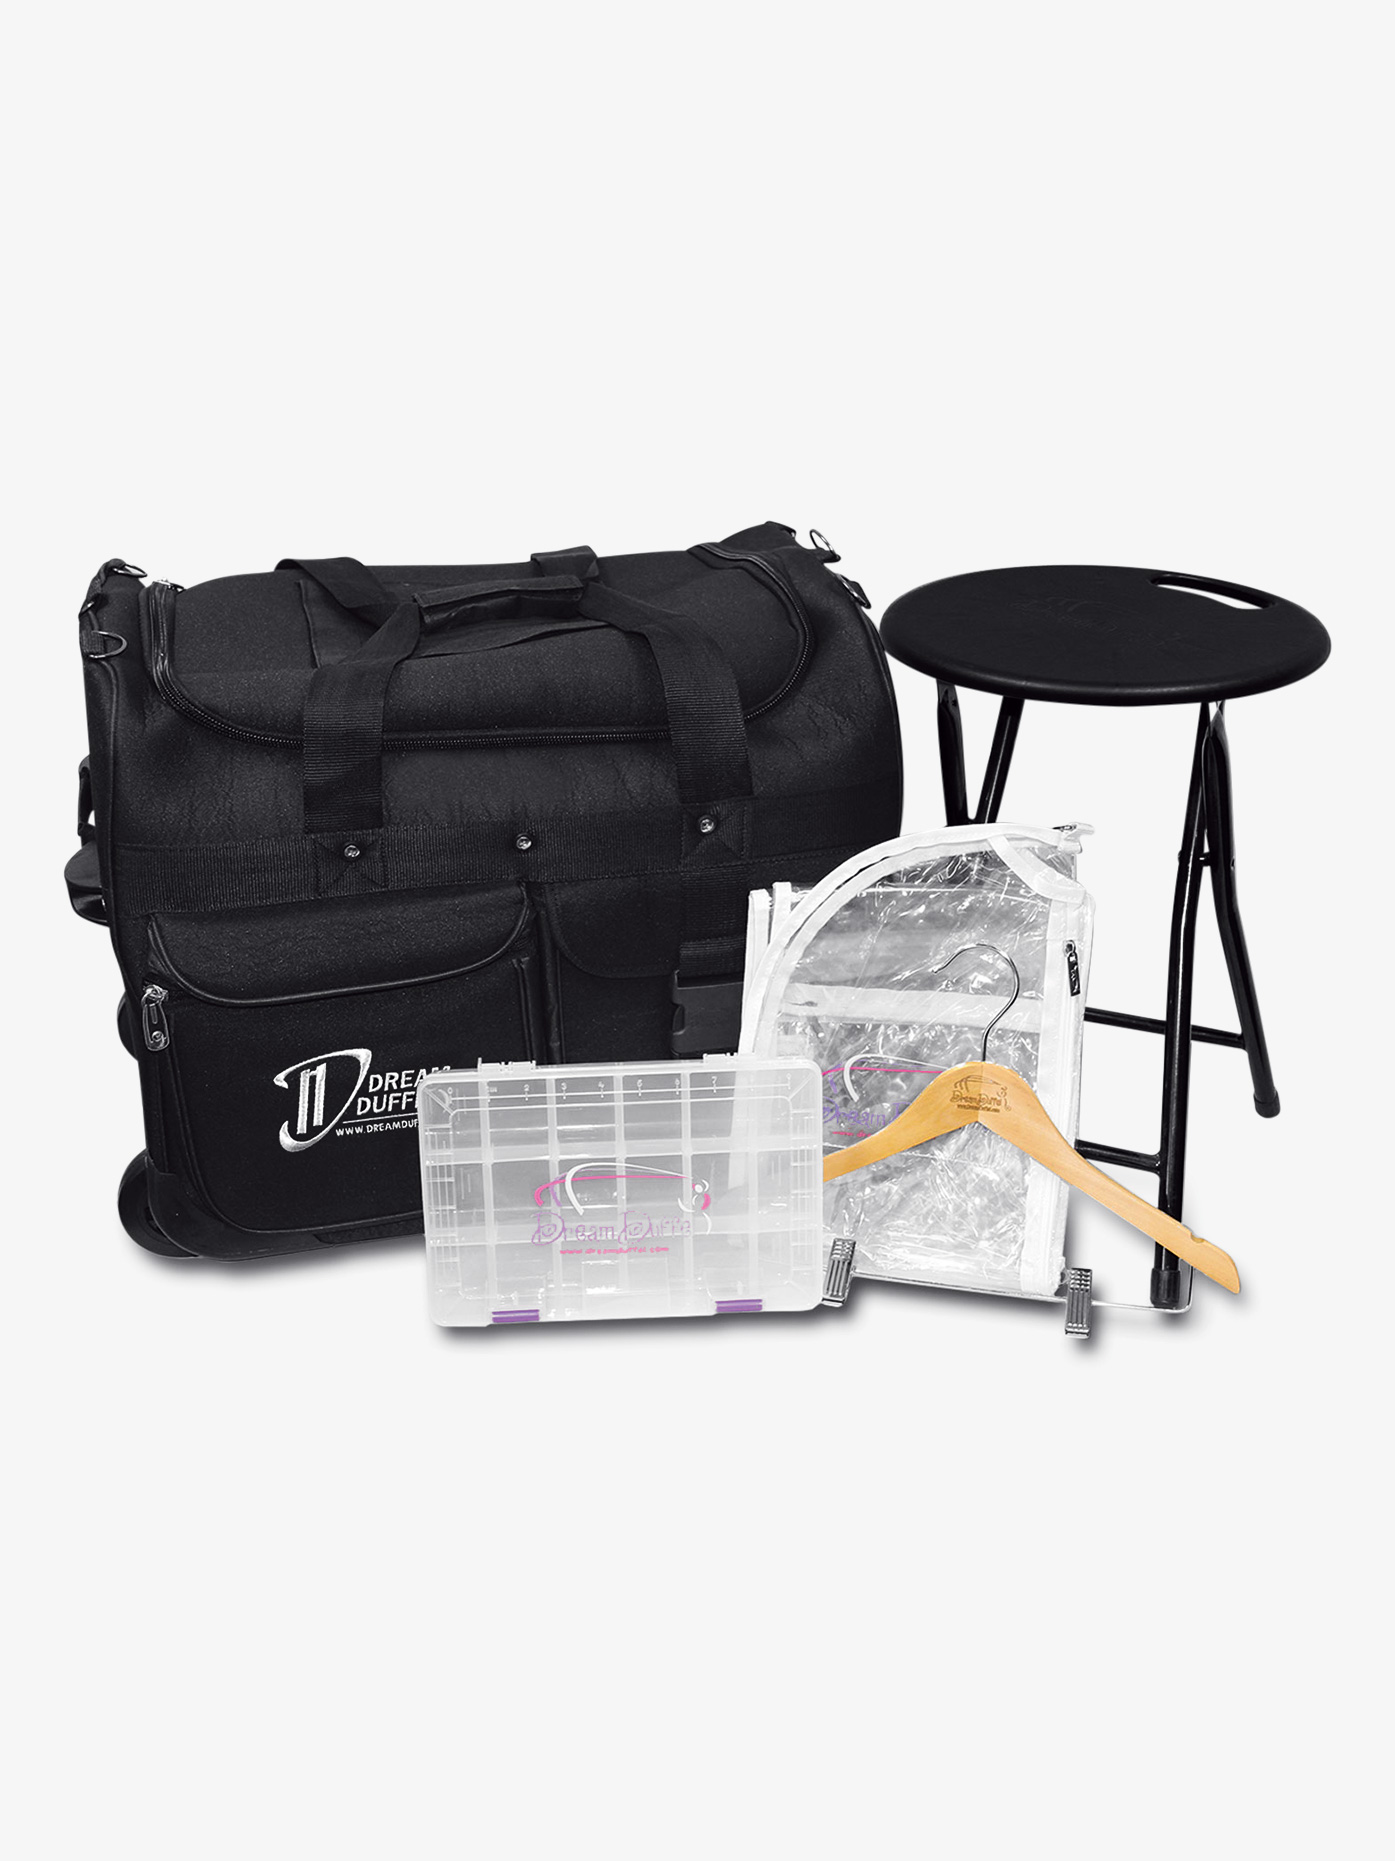 Dream Duffel Small Black Bag Complete Pack D1200CP